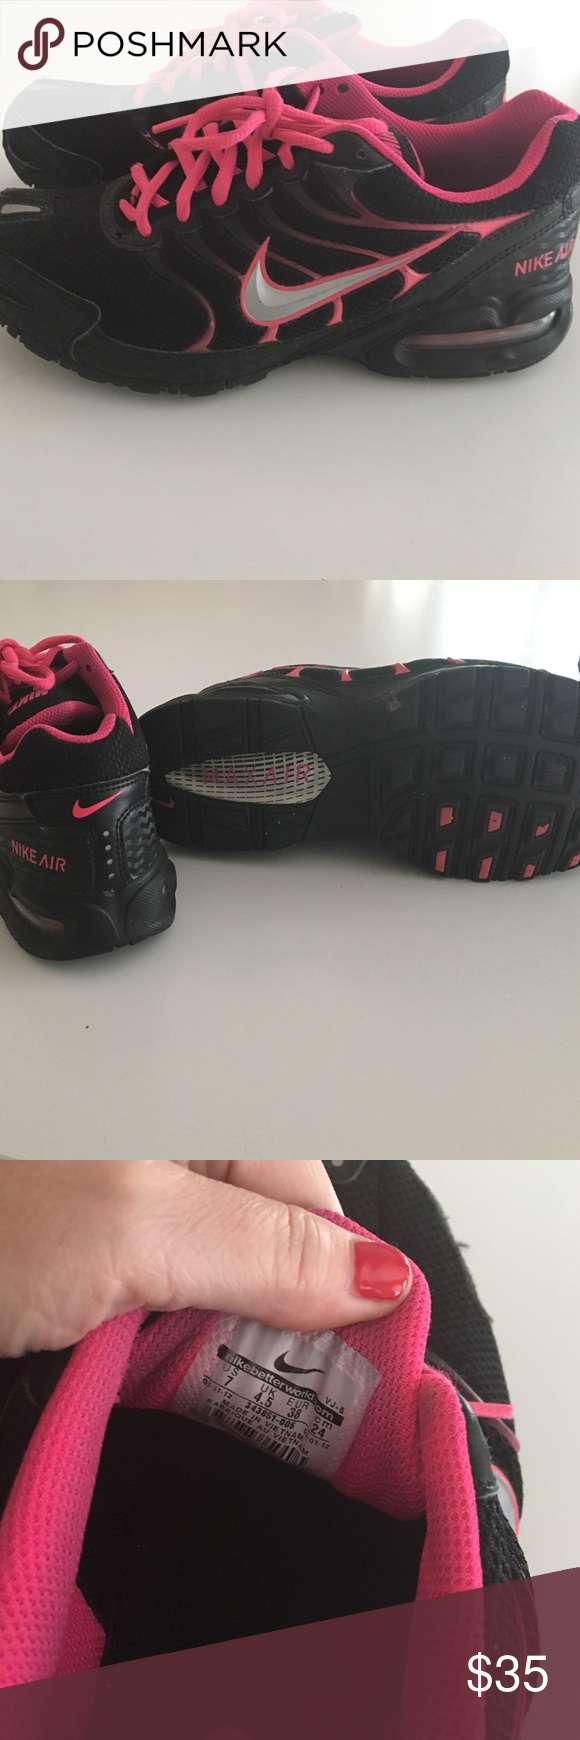 Nike air max torch 4 running shoe - Nike Air Max Torch 4 Running Walking Shoes Great Used Condition Nike Air Max Torch4 Black